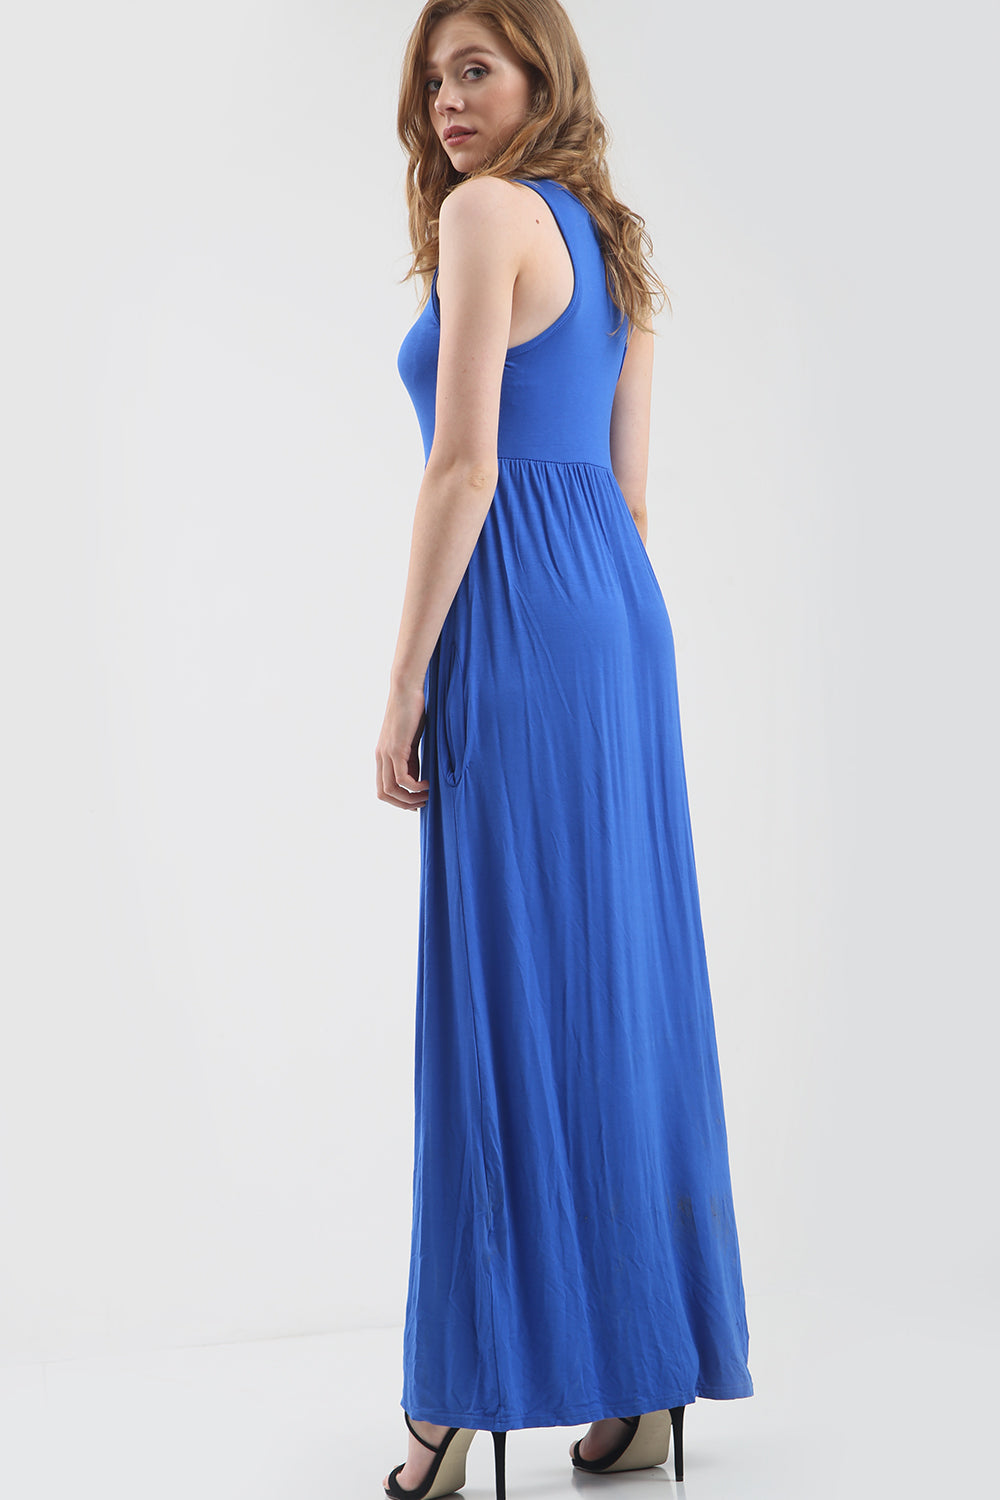 Jersey Sleeveless Maxi Dress with Pockets - bejealous-com